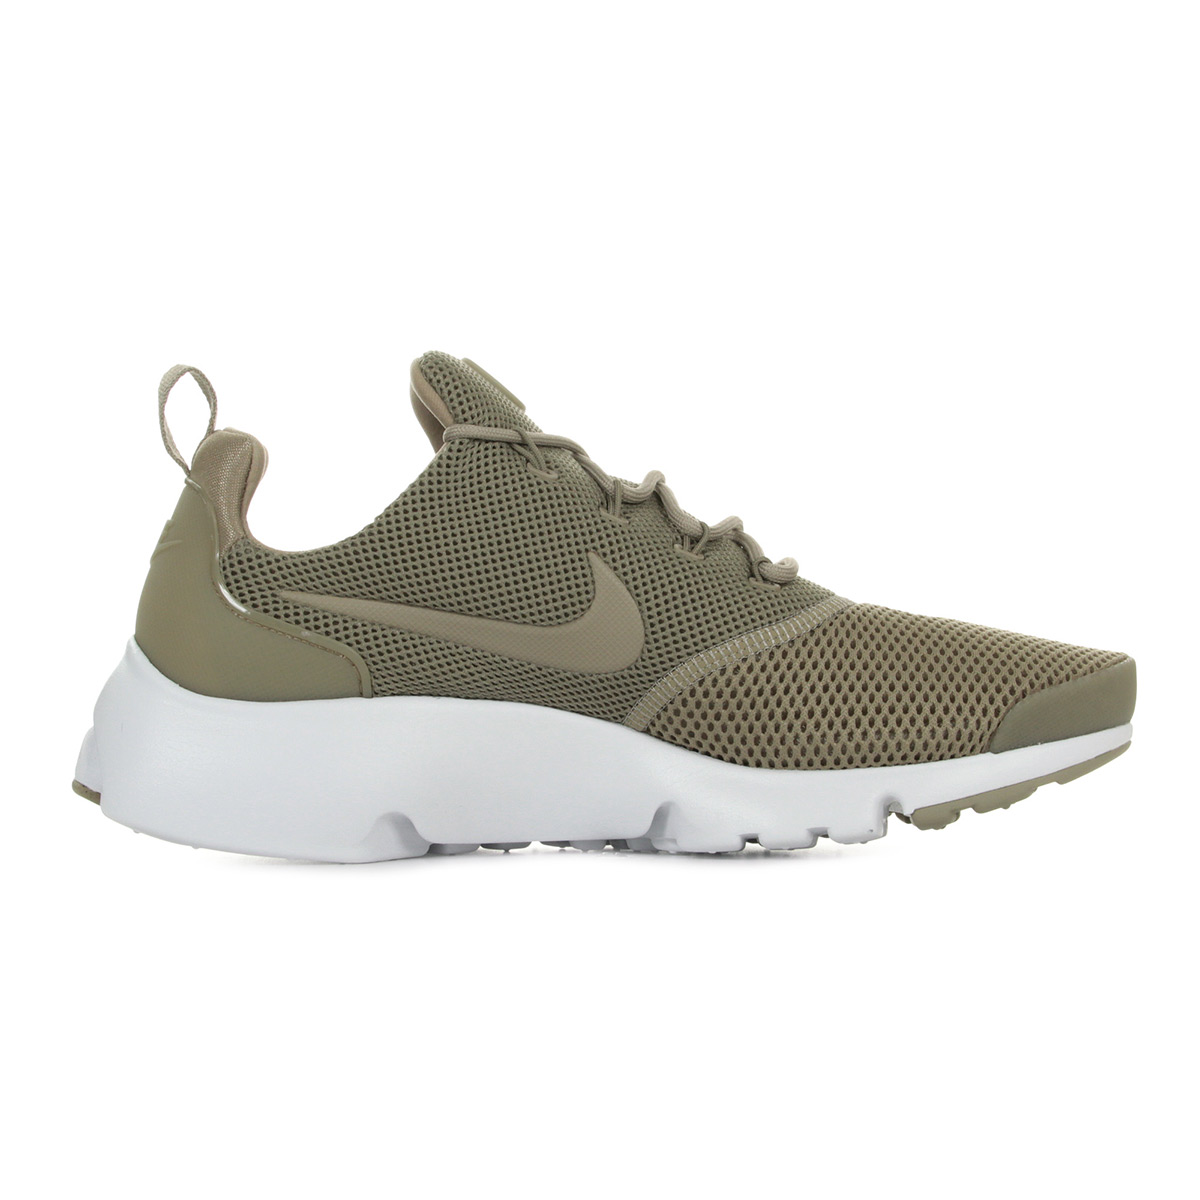 Nike Air Presto Fly 908019200, Baskets mode homme